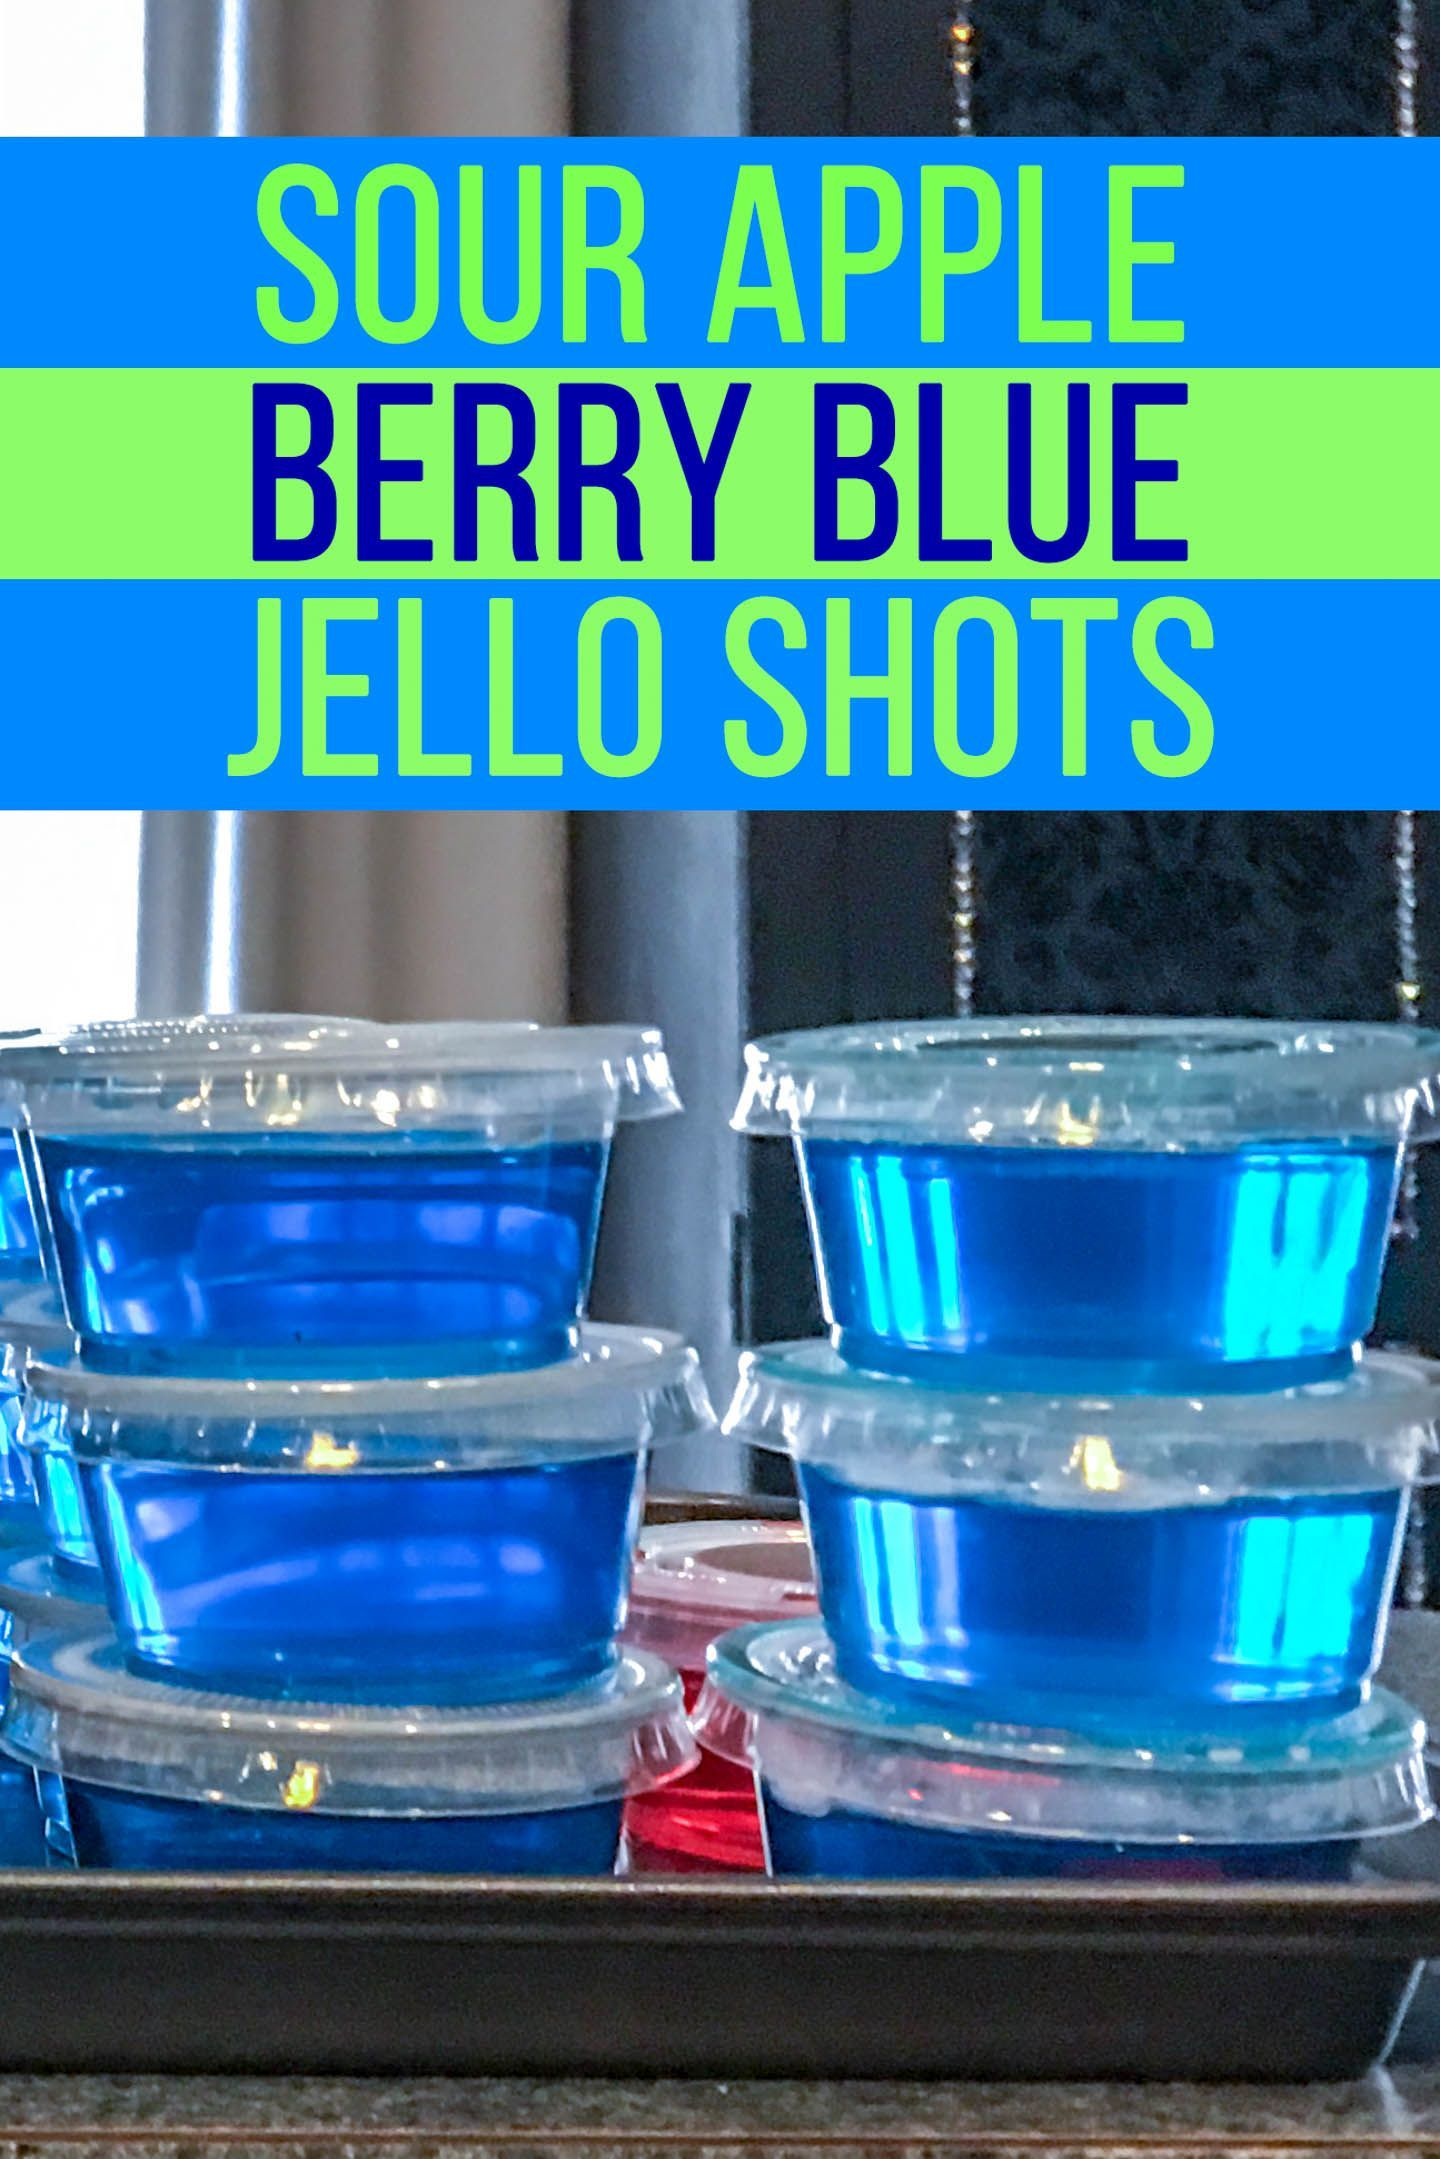 Sour Apple Blue Jello Shots Recipe - Entertaining Diva Recipes @ From House To Home